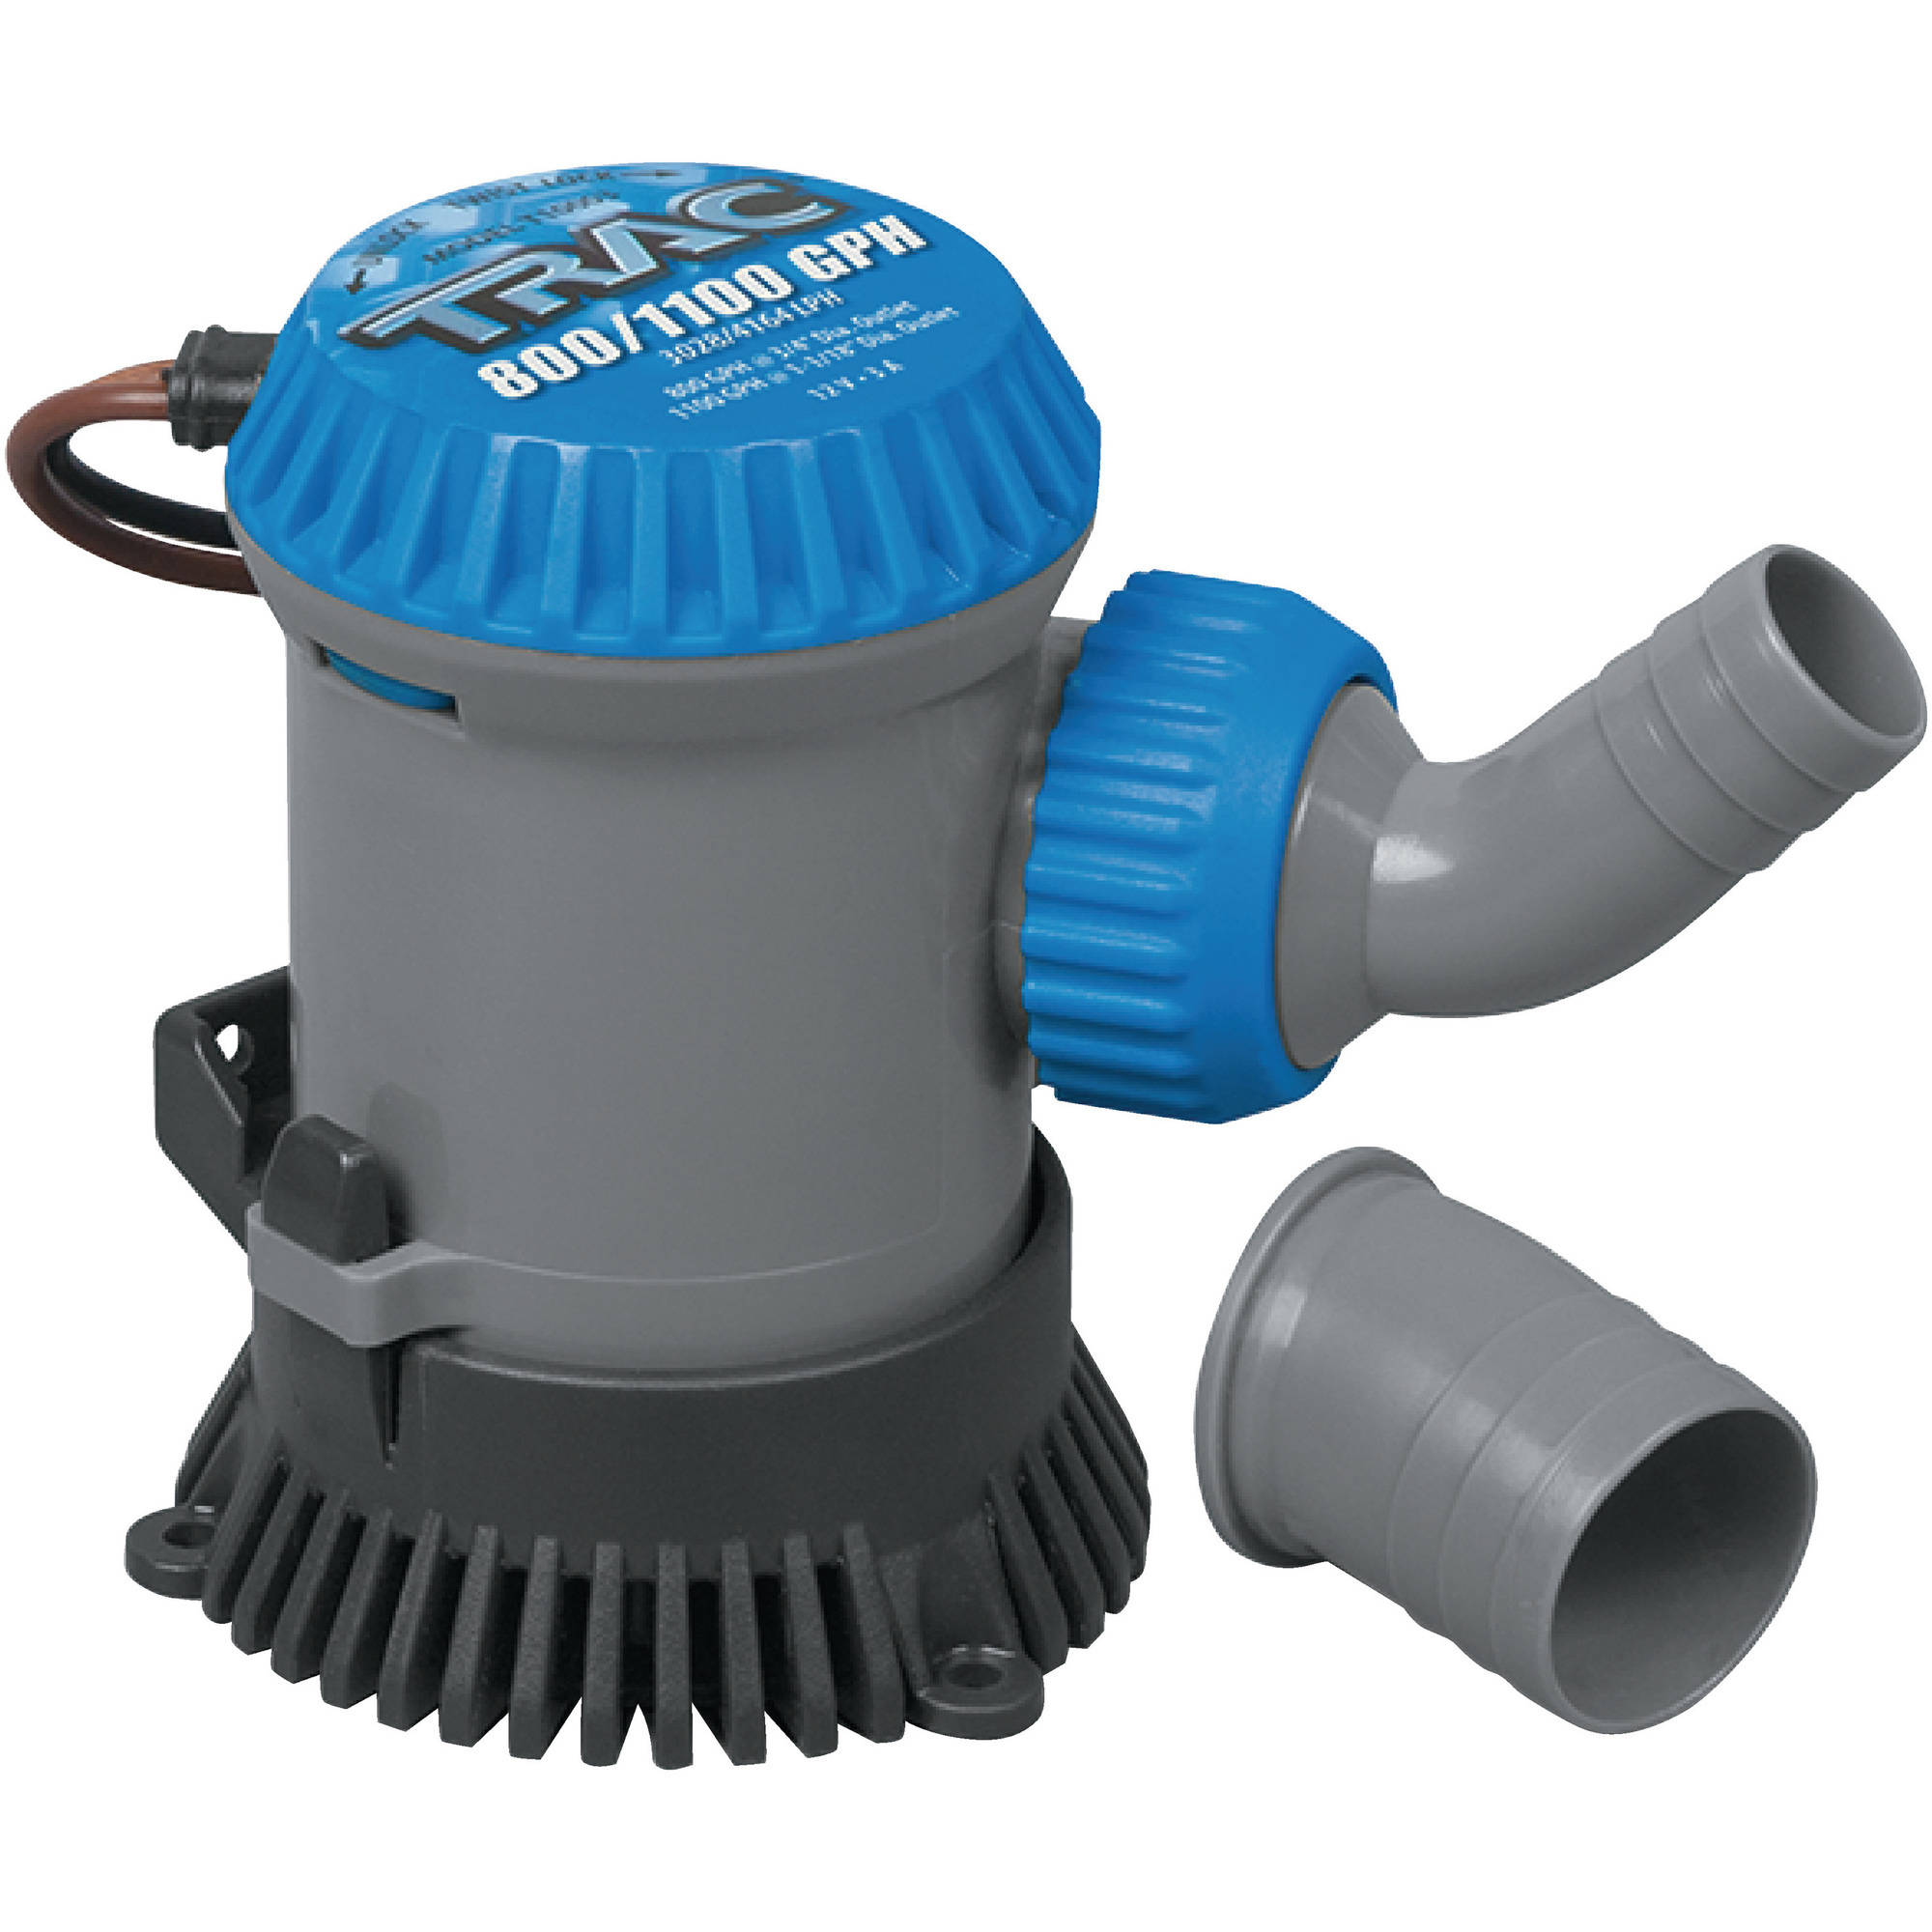 Trac 600 GPH Bilge Pump by Trac Outdoor Products Co